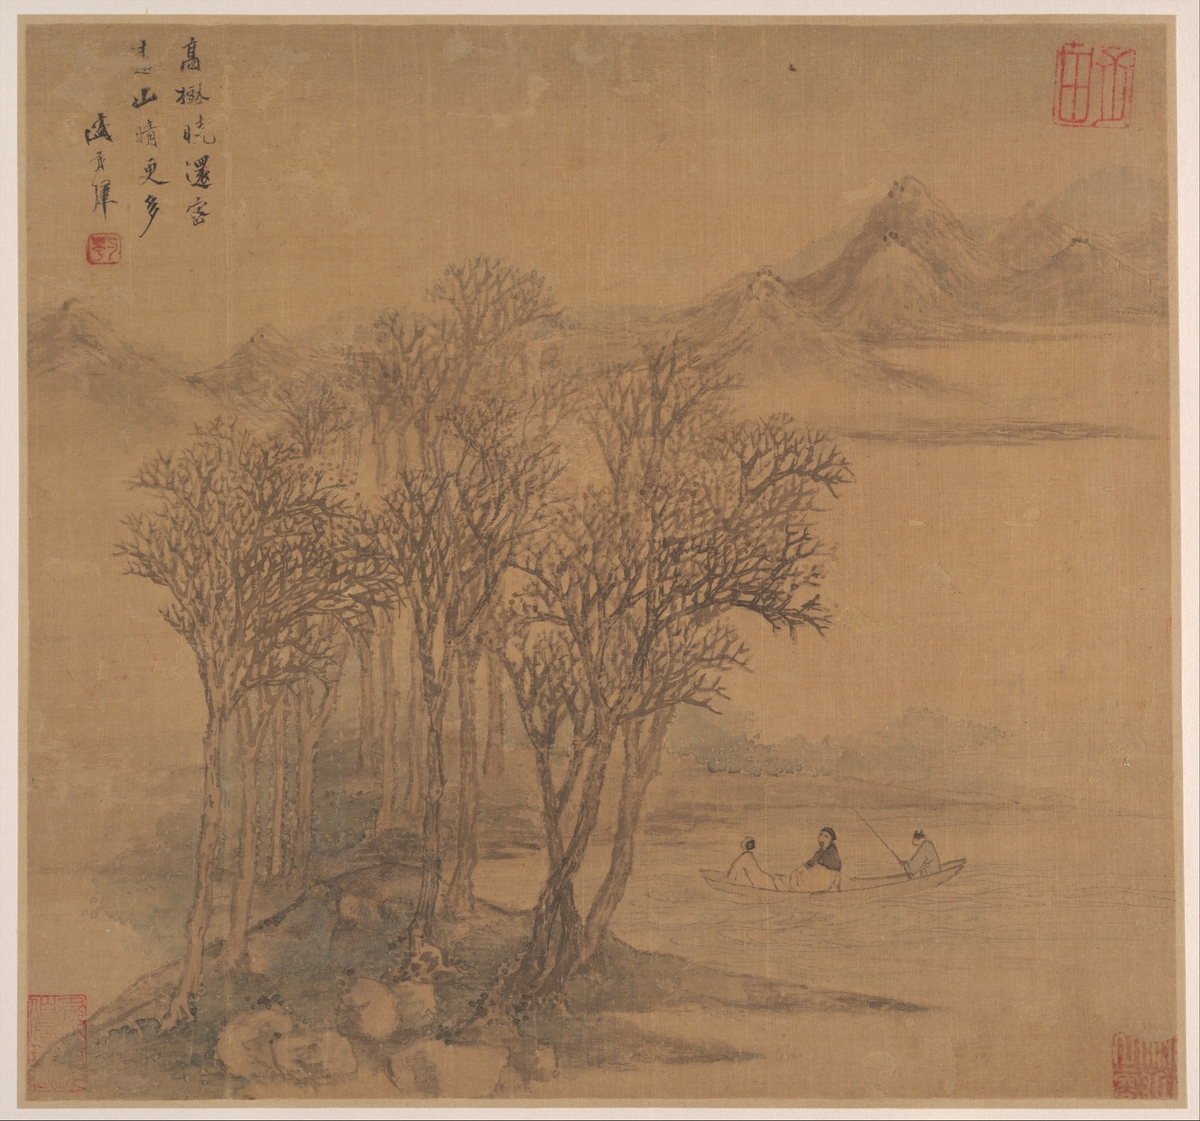 Landscapes after Tang Poems / Sheng Maoye / mid 17th century